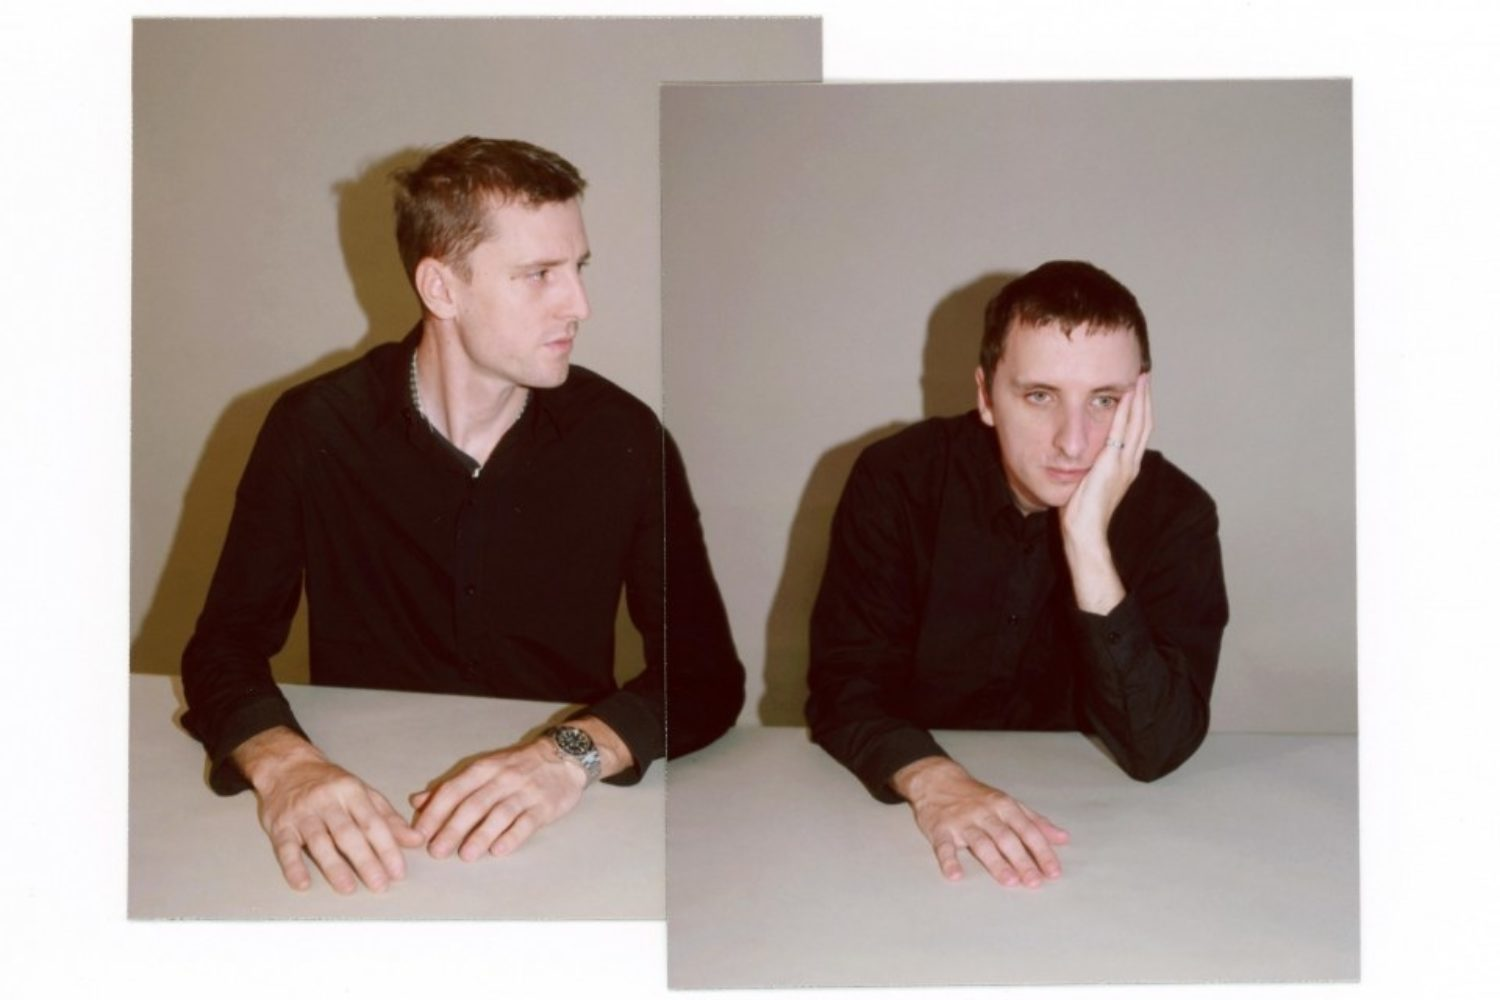 These New Puritans share details of livestream performance